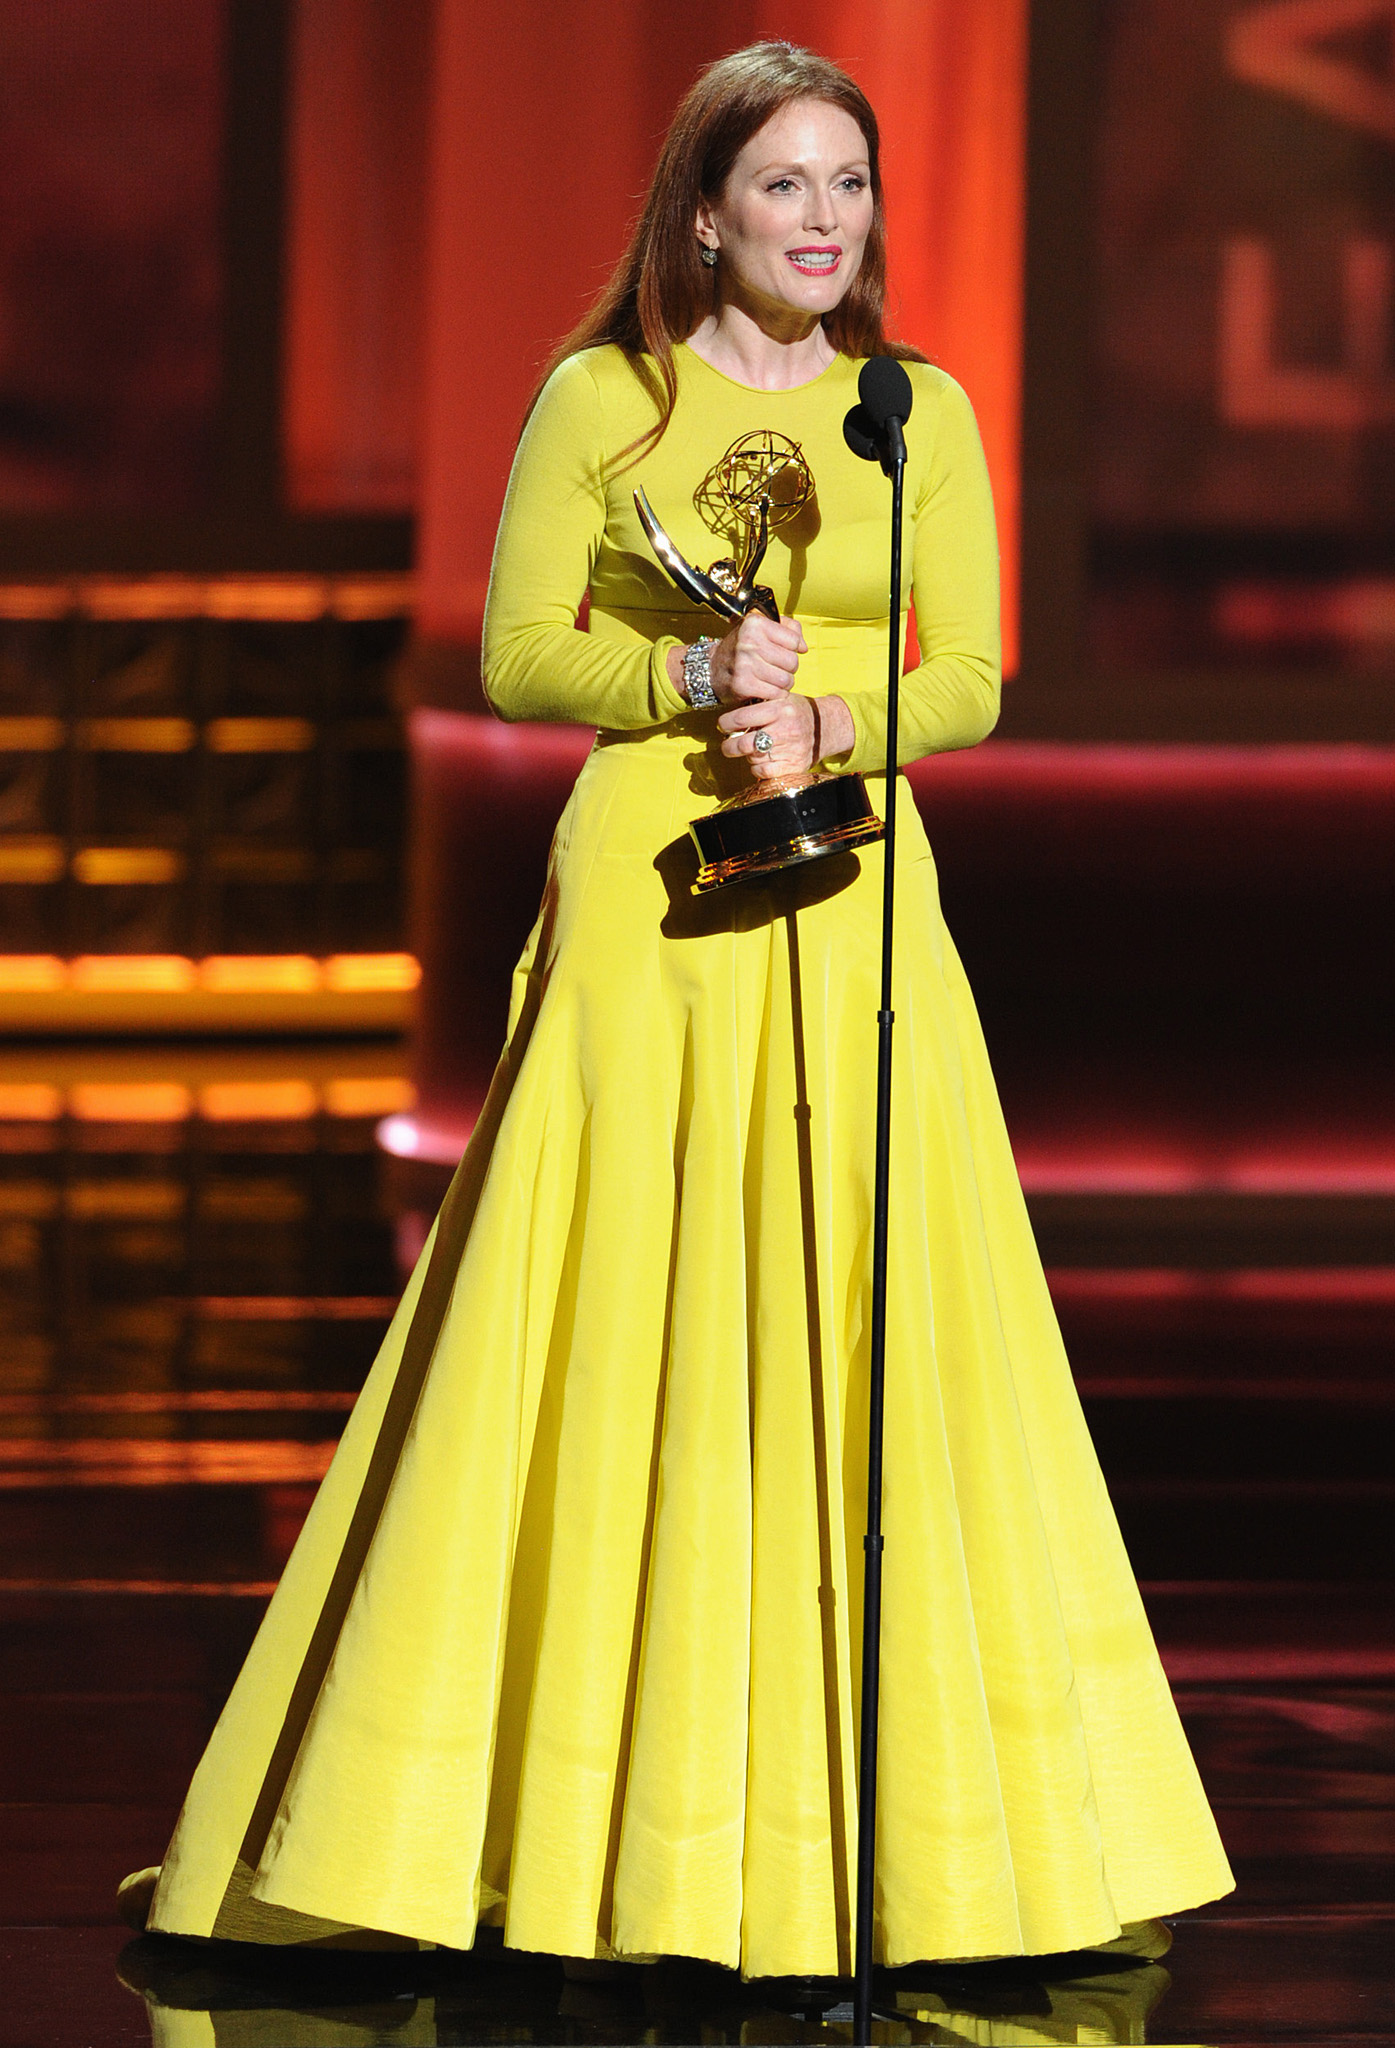 emmys-top-moments-17-moore2.jpg